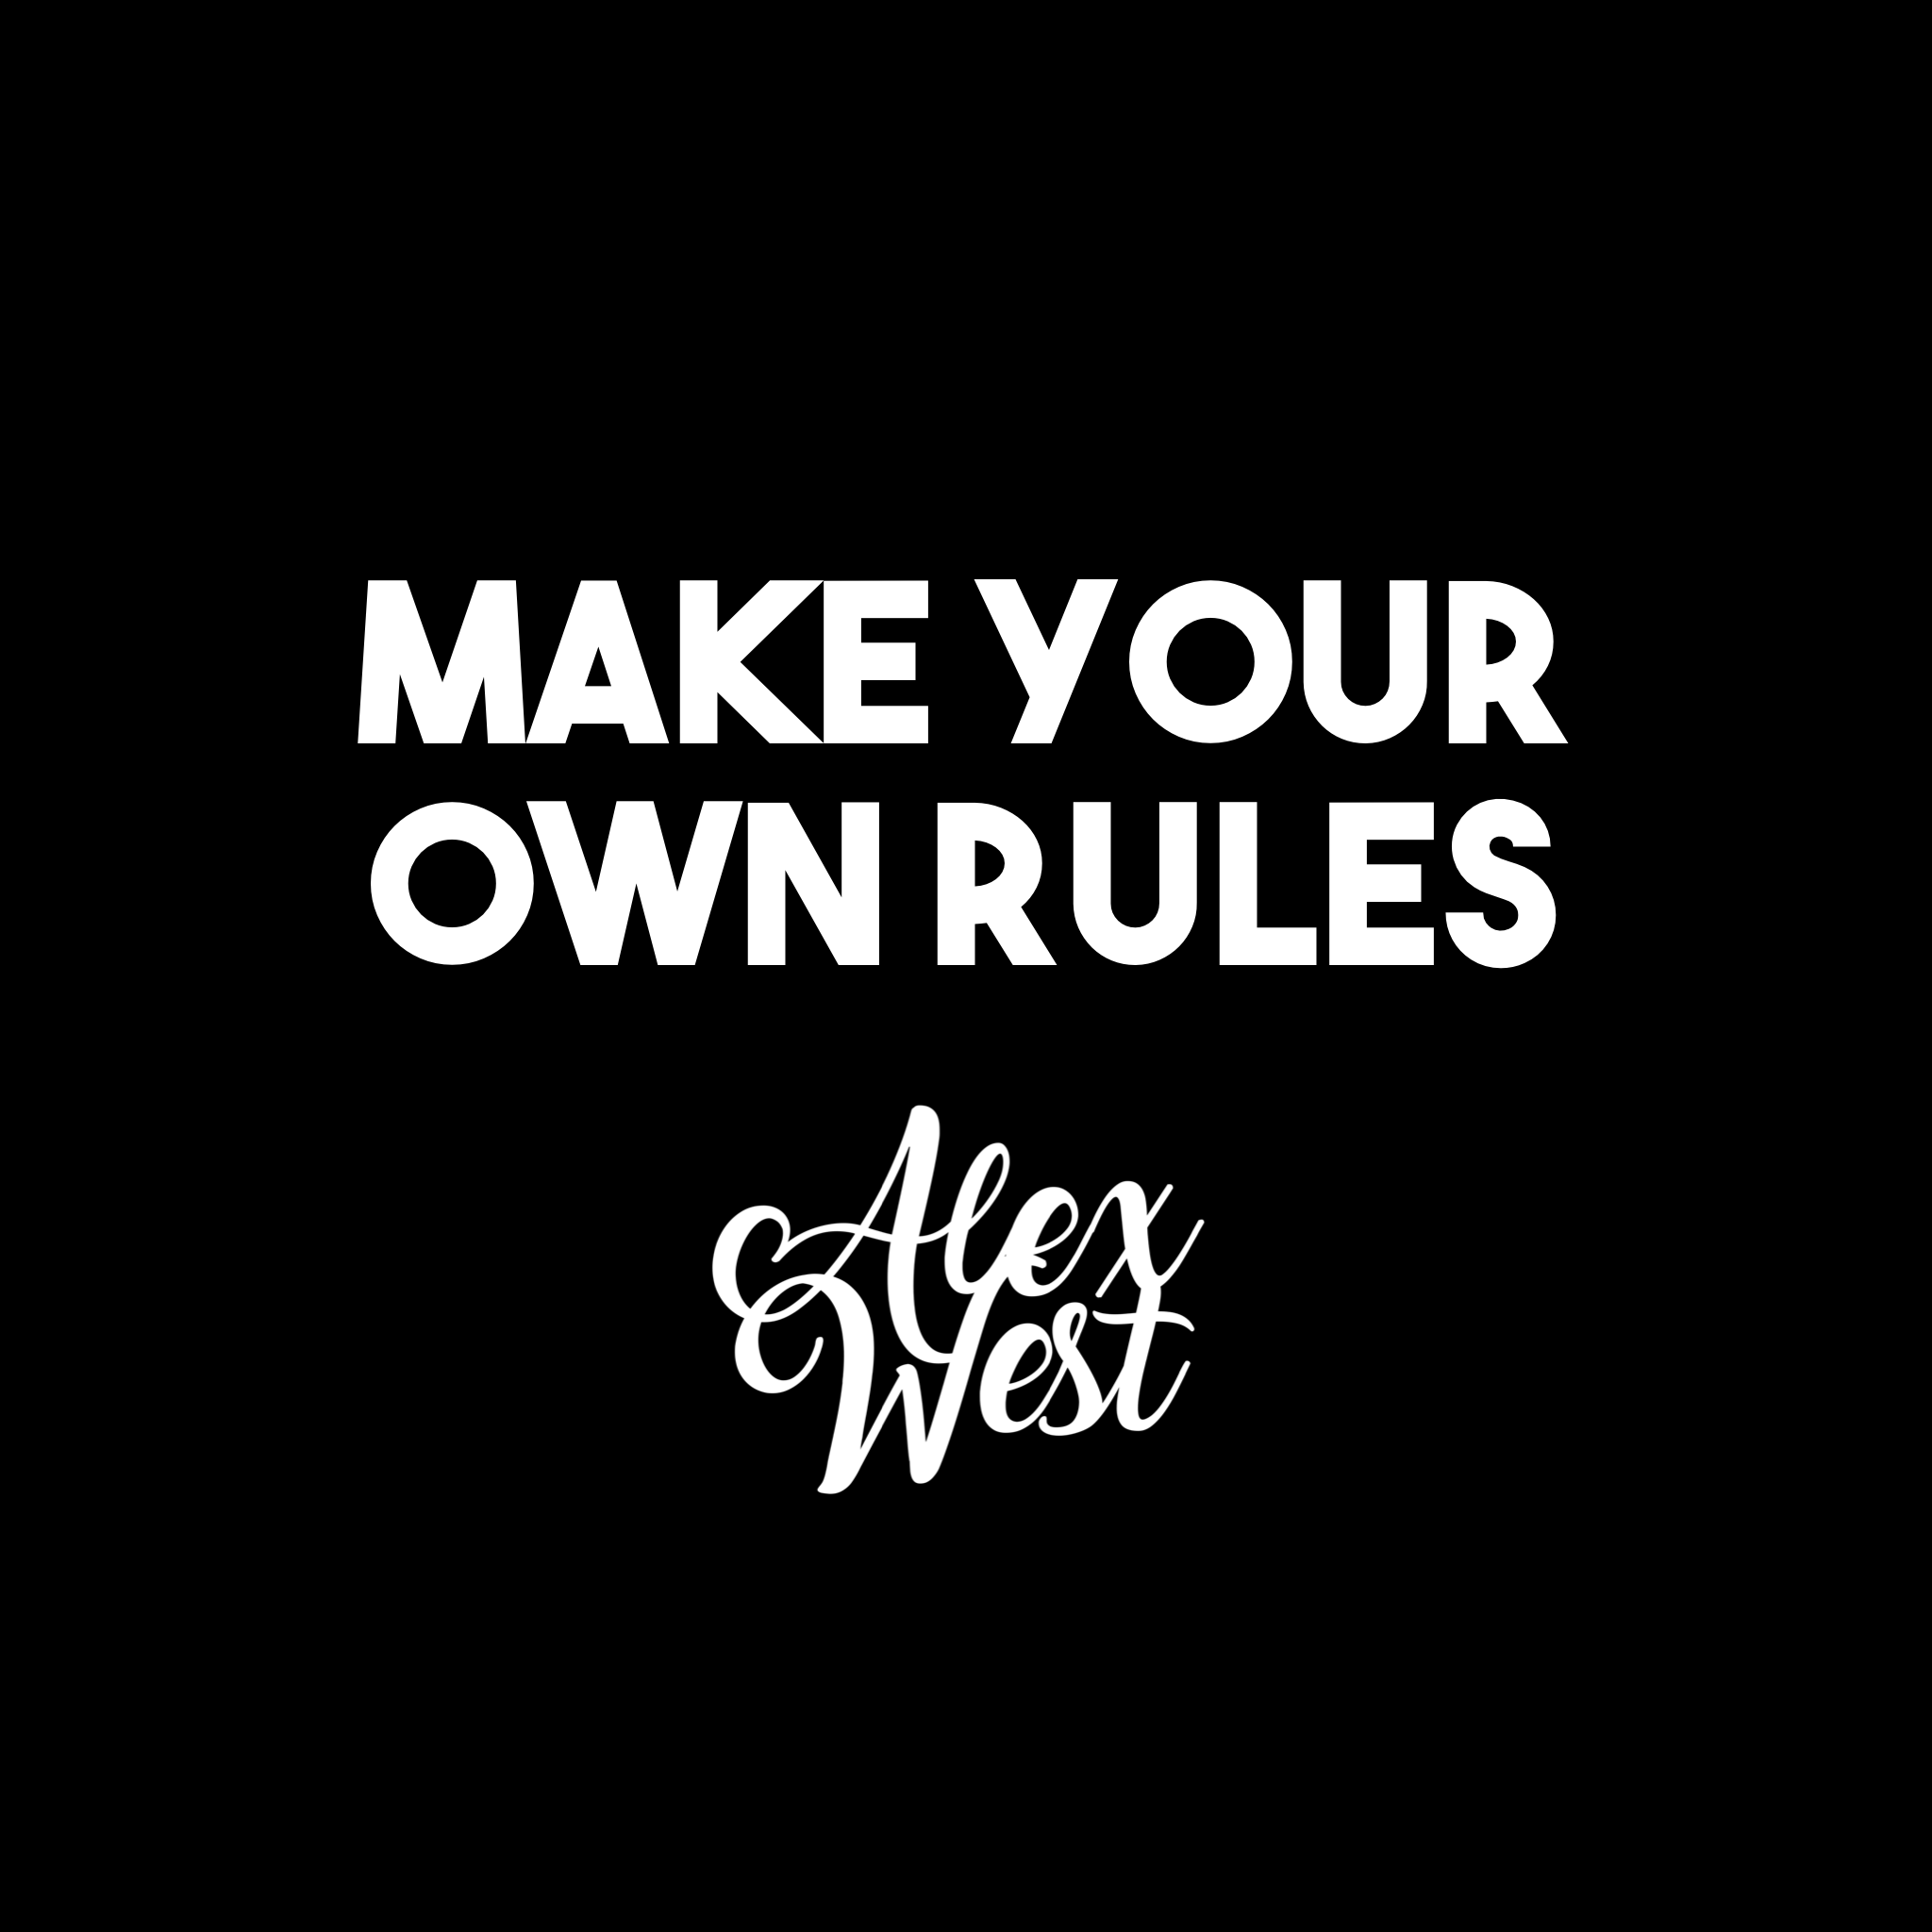 MAKE YOUR OWN RULES motivation quotes success inspiration gym fitness nike clothes fashion luxury success